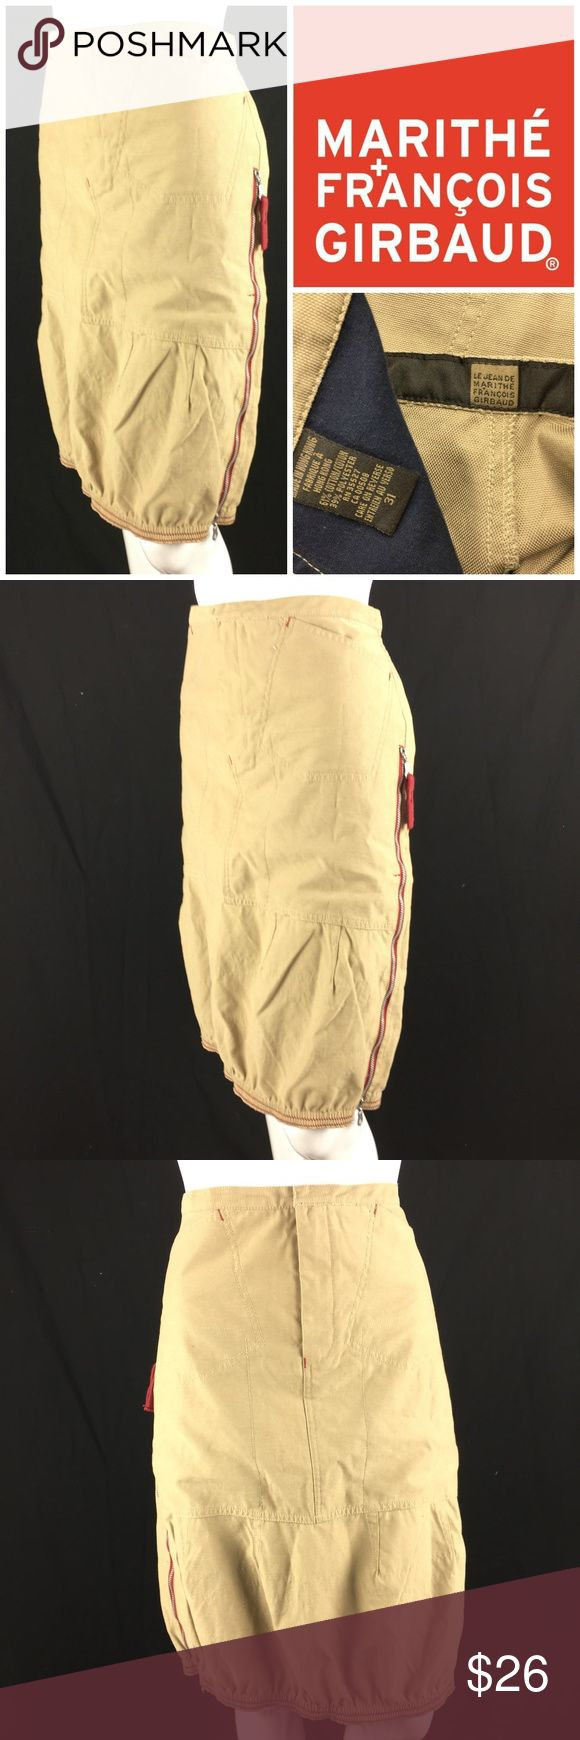 """Vtg Marithe Francois Girbaud Cargo Skirt Sz 31 *  Vtg 90's Marithe Francois Girbaud Khaki Cargo Pencil Skirt  * Decorative & Functional Side Zippers ~  Pockets ~ Back Tie ~ Sz 31 ~ Slight Bubble Hem * Please see below for measurements; all measurements taken with garment lying flat.  Please see all photos for complete condition assessment. Waist: 16.5"""" Hip: 20"""" Overall Length: 24"""" Item Number: 3844 II Girbaud Skirts"""